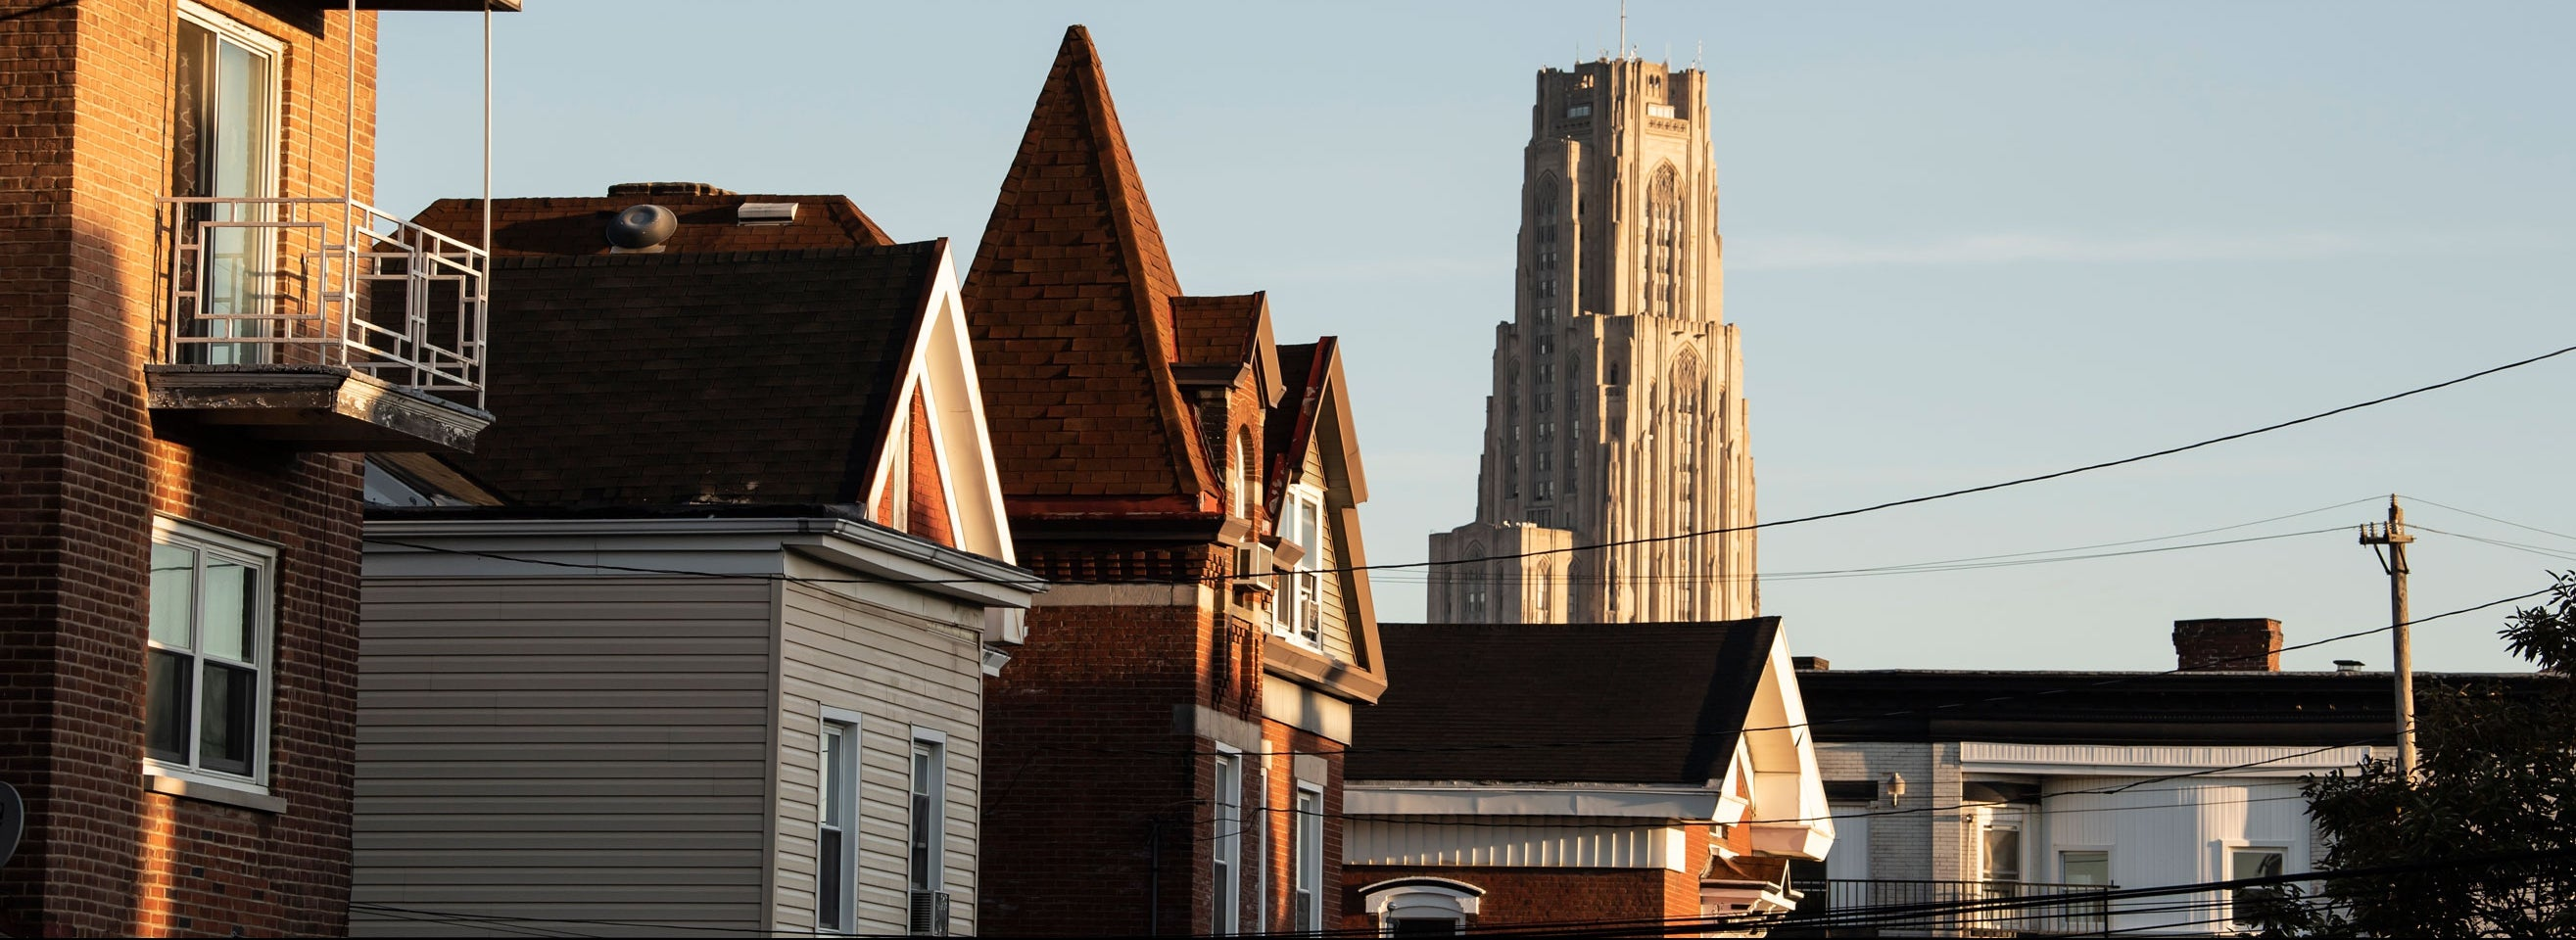 The rooftops of Oakland houses with the Cathedral of Learning in the background